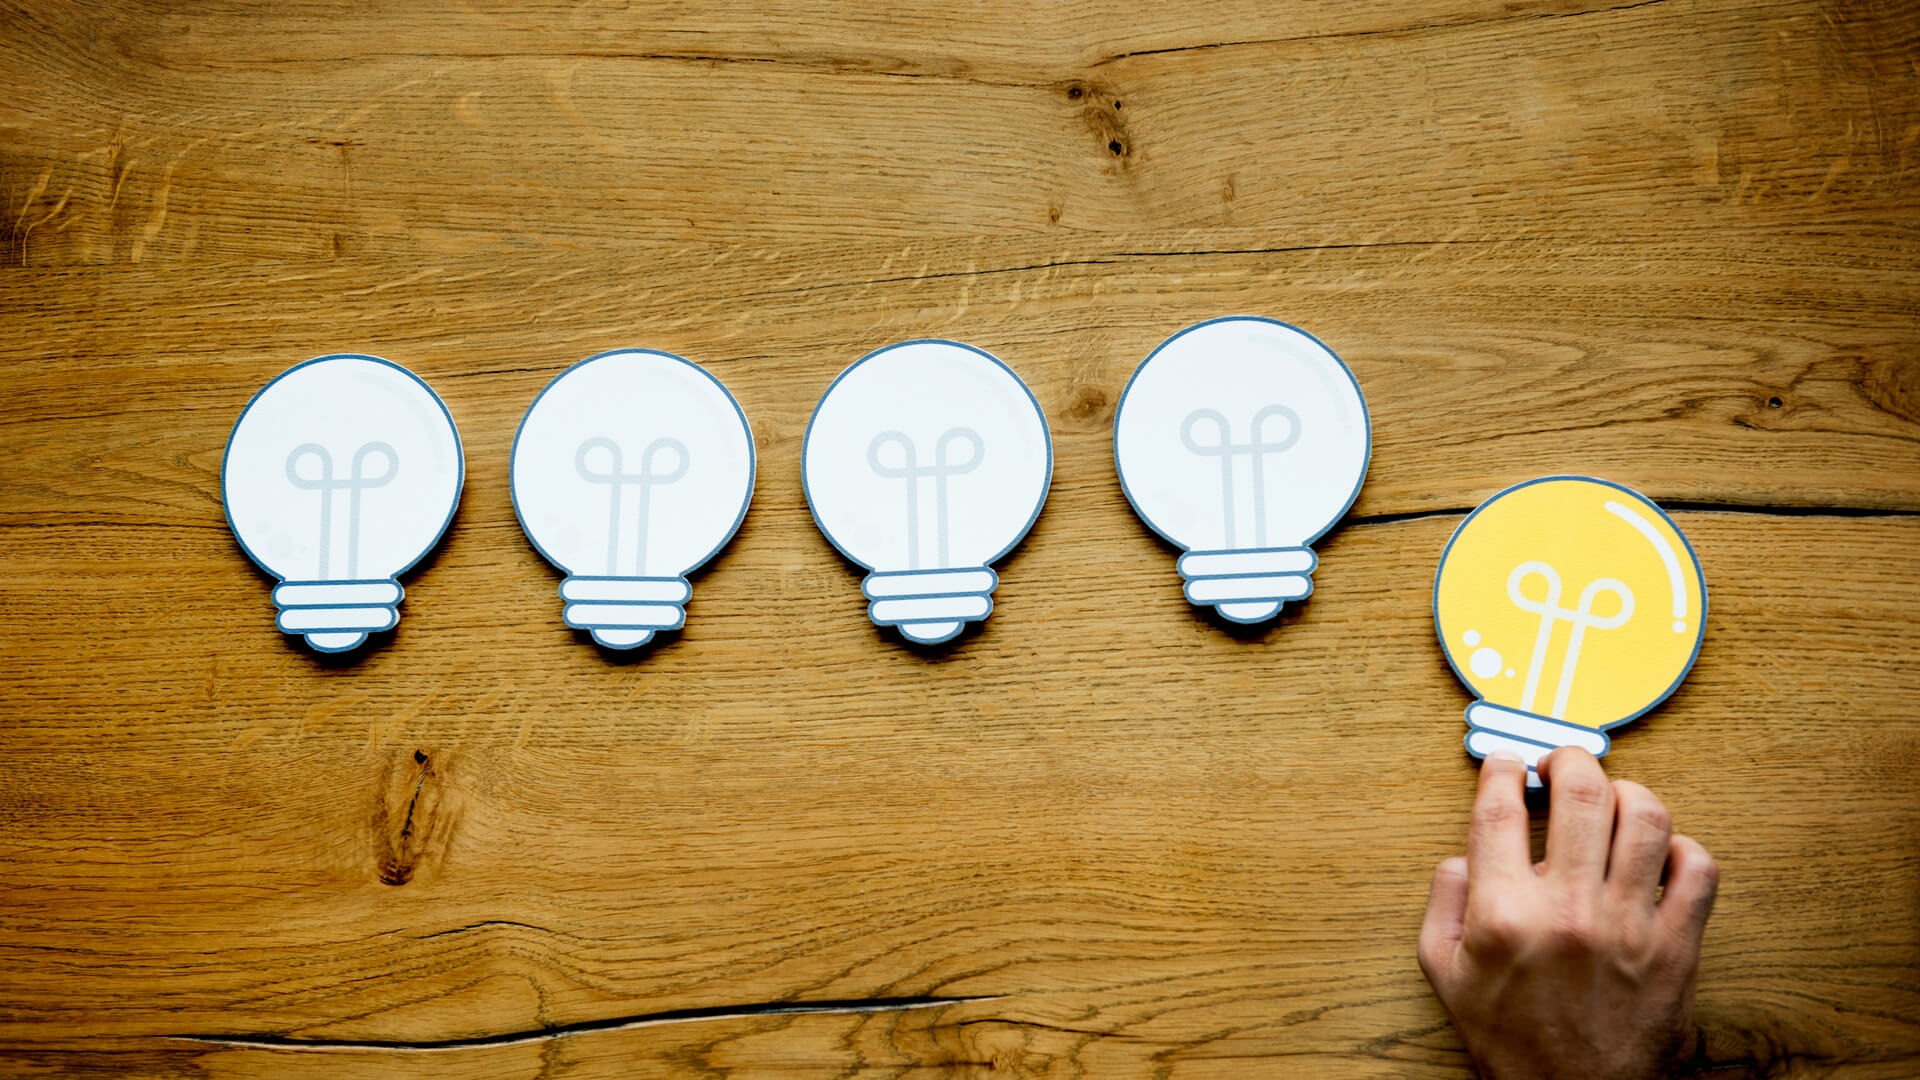 5 TED Talks to Fuel Innovation